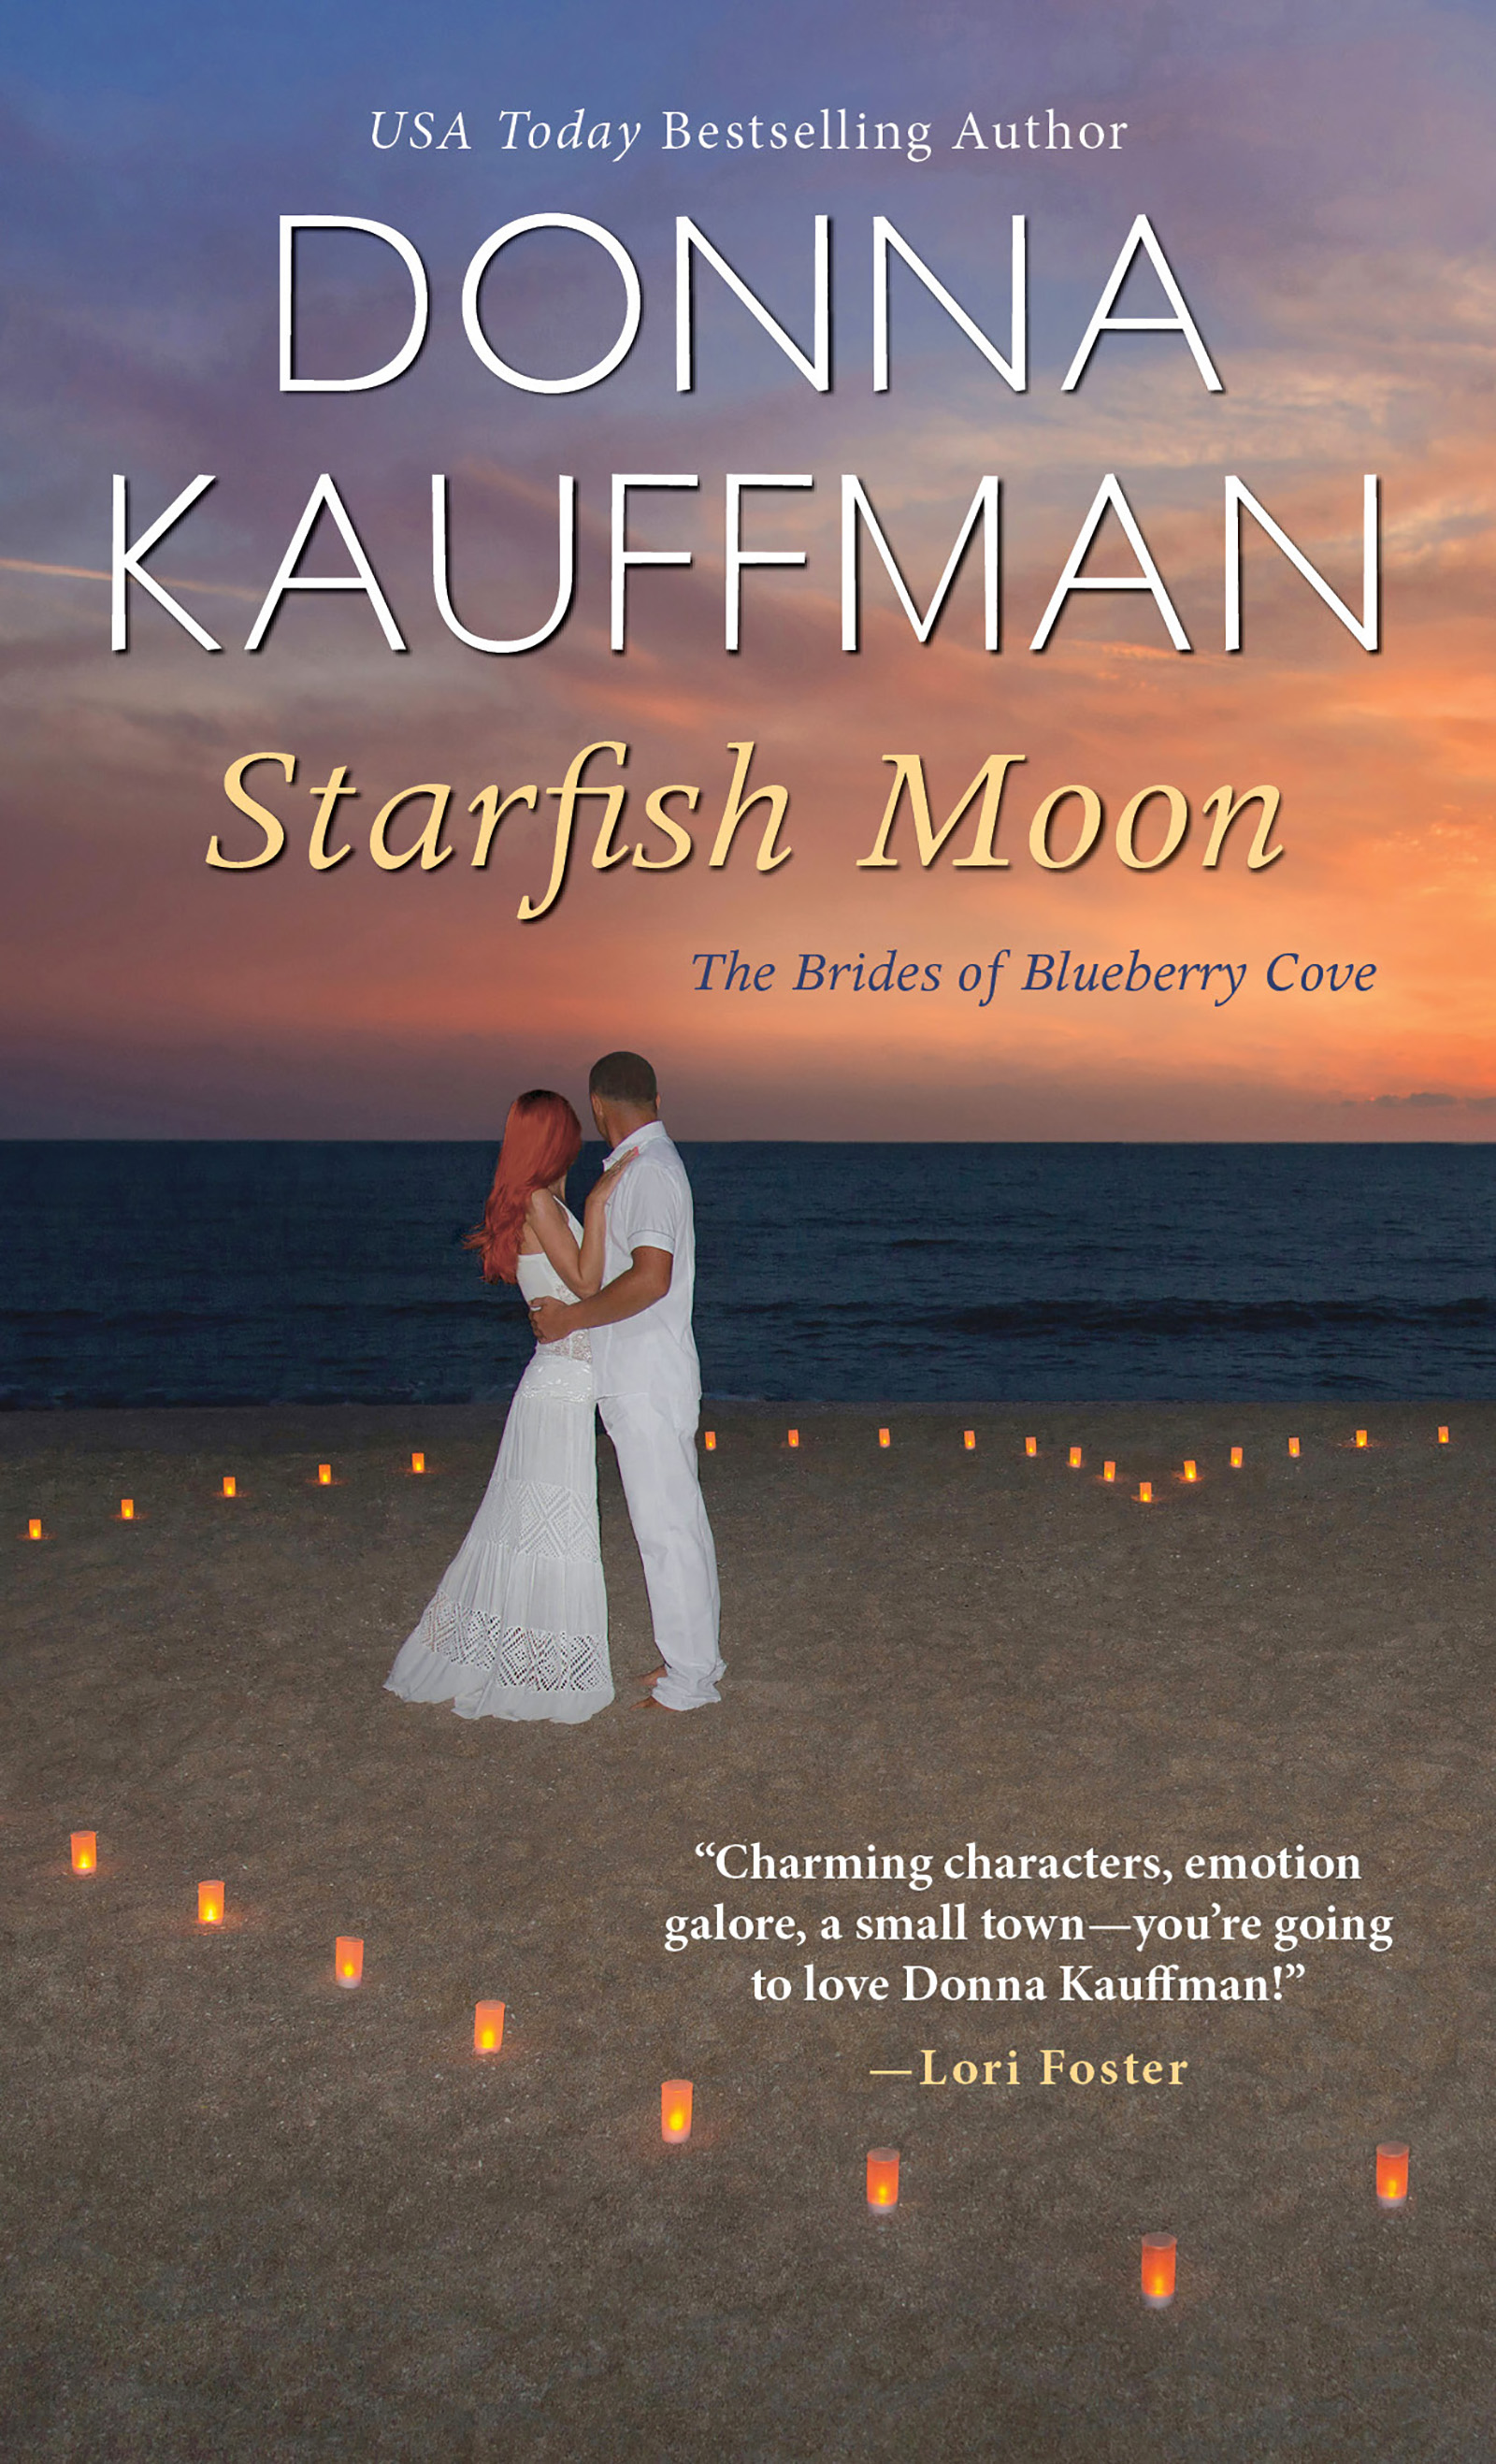 Starfish moon cover image